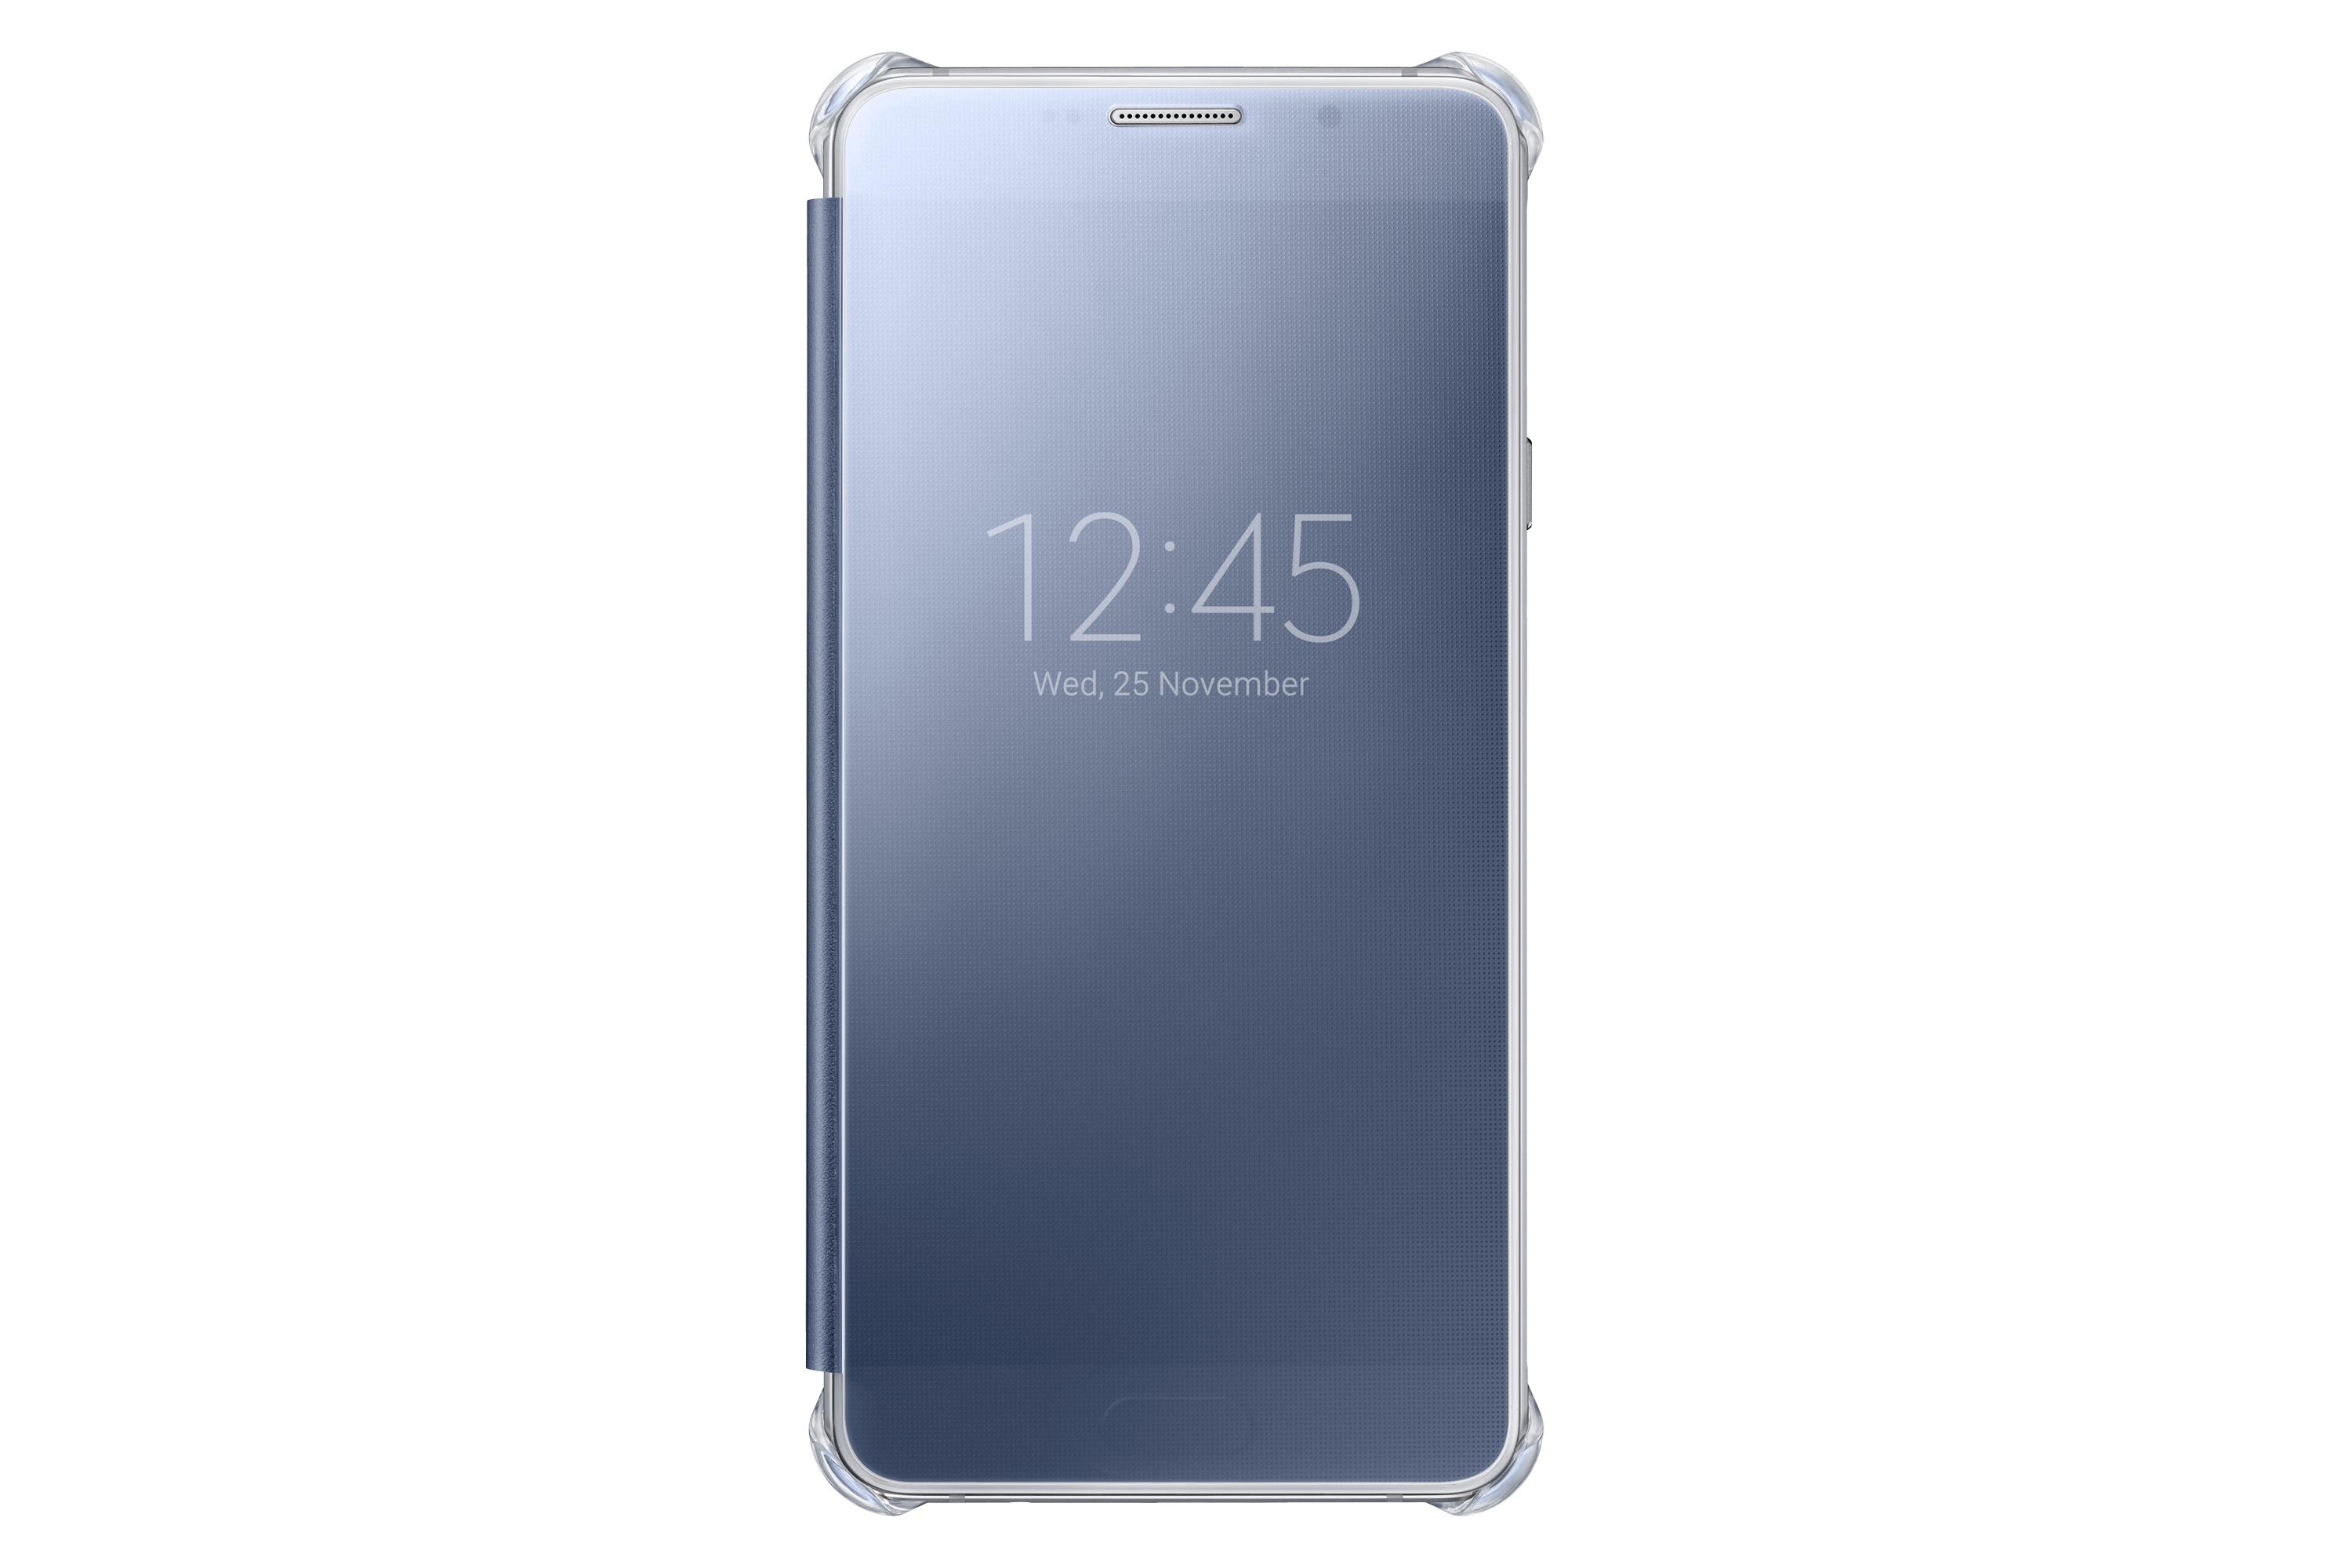 Capa Protetora Clear View Galaxy A7 (2016)